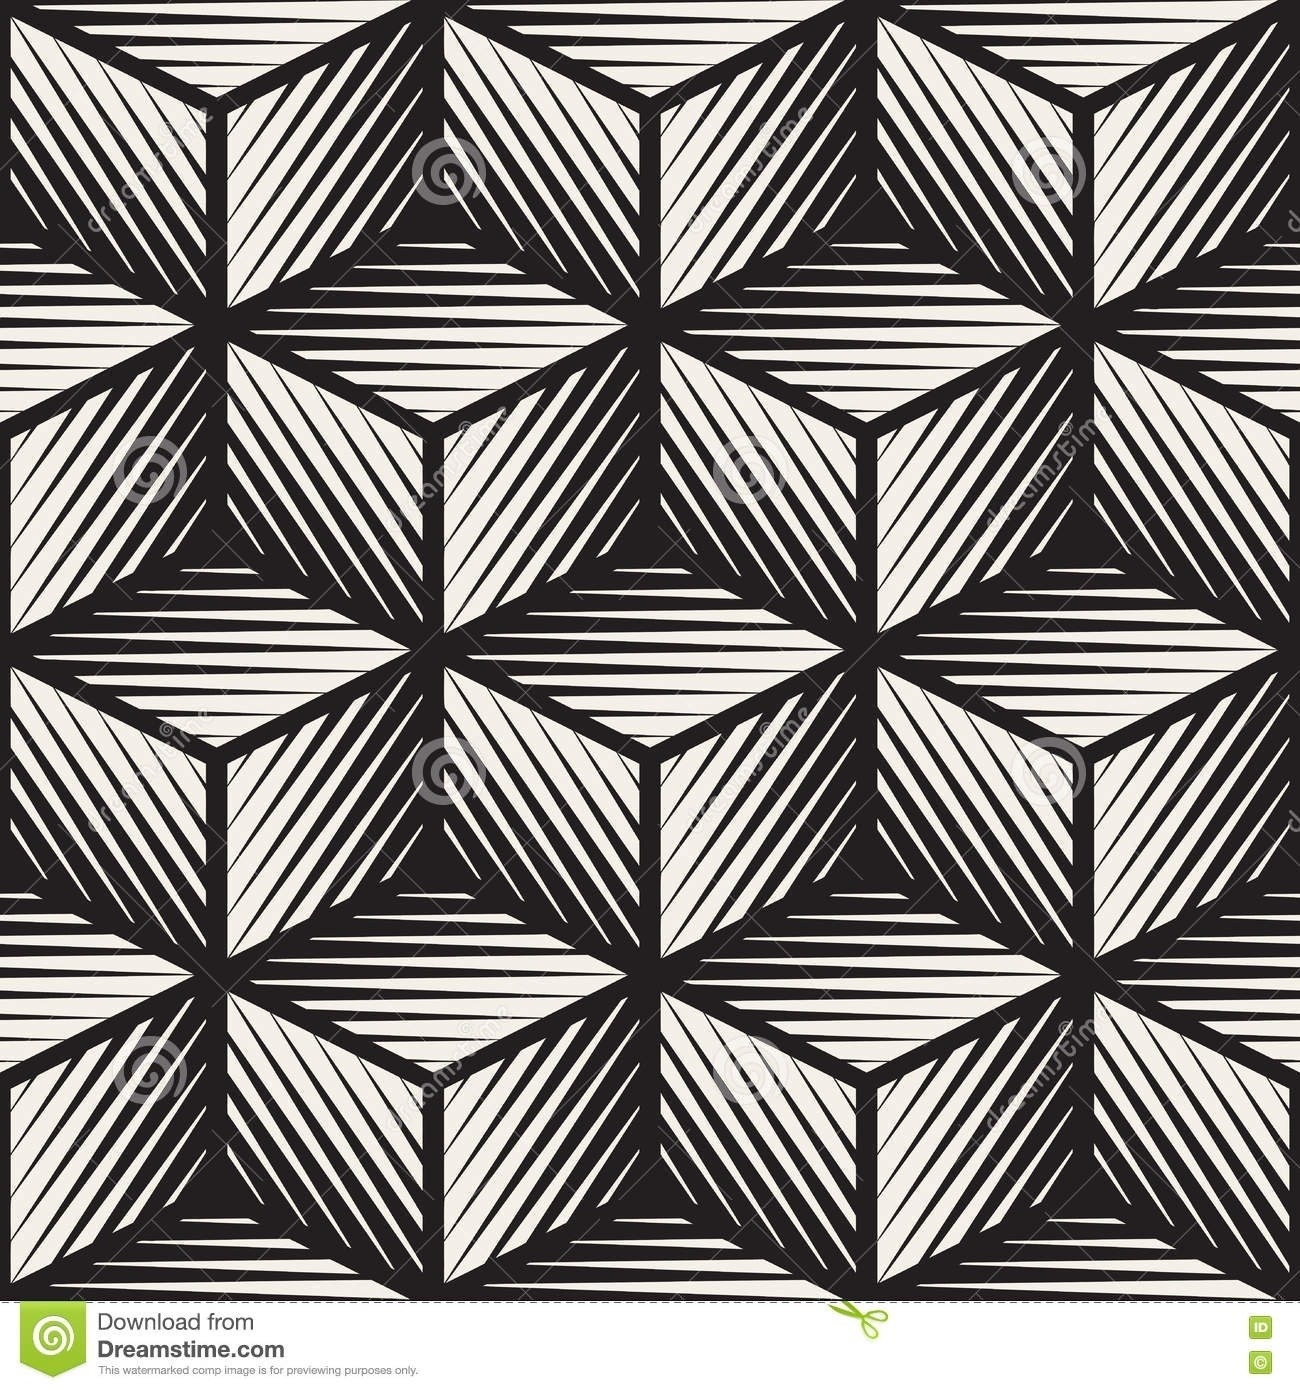 Geometric Shapes Design Black And White | World Of Example regarding Geometric Shapes Design Black And White 24453